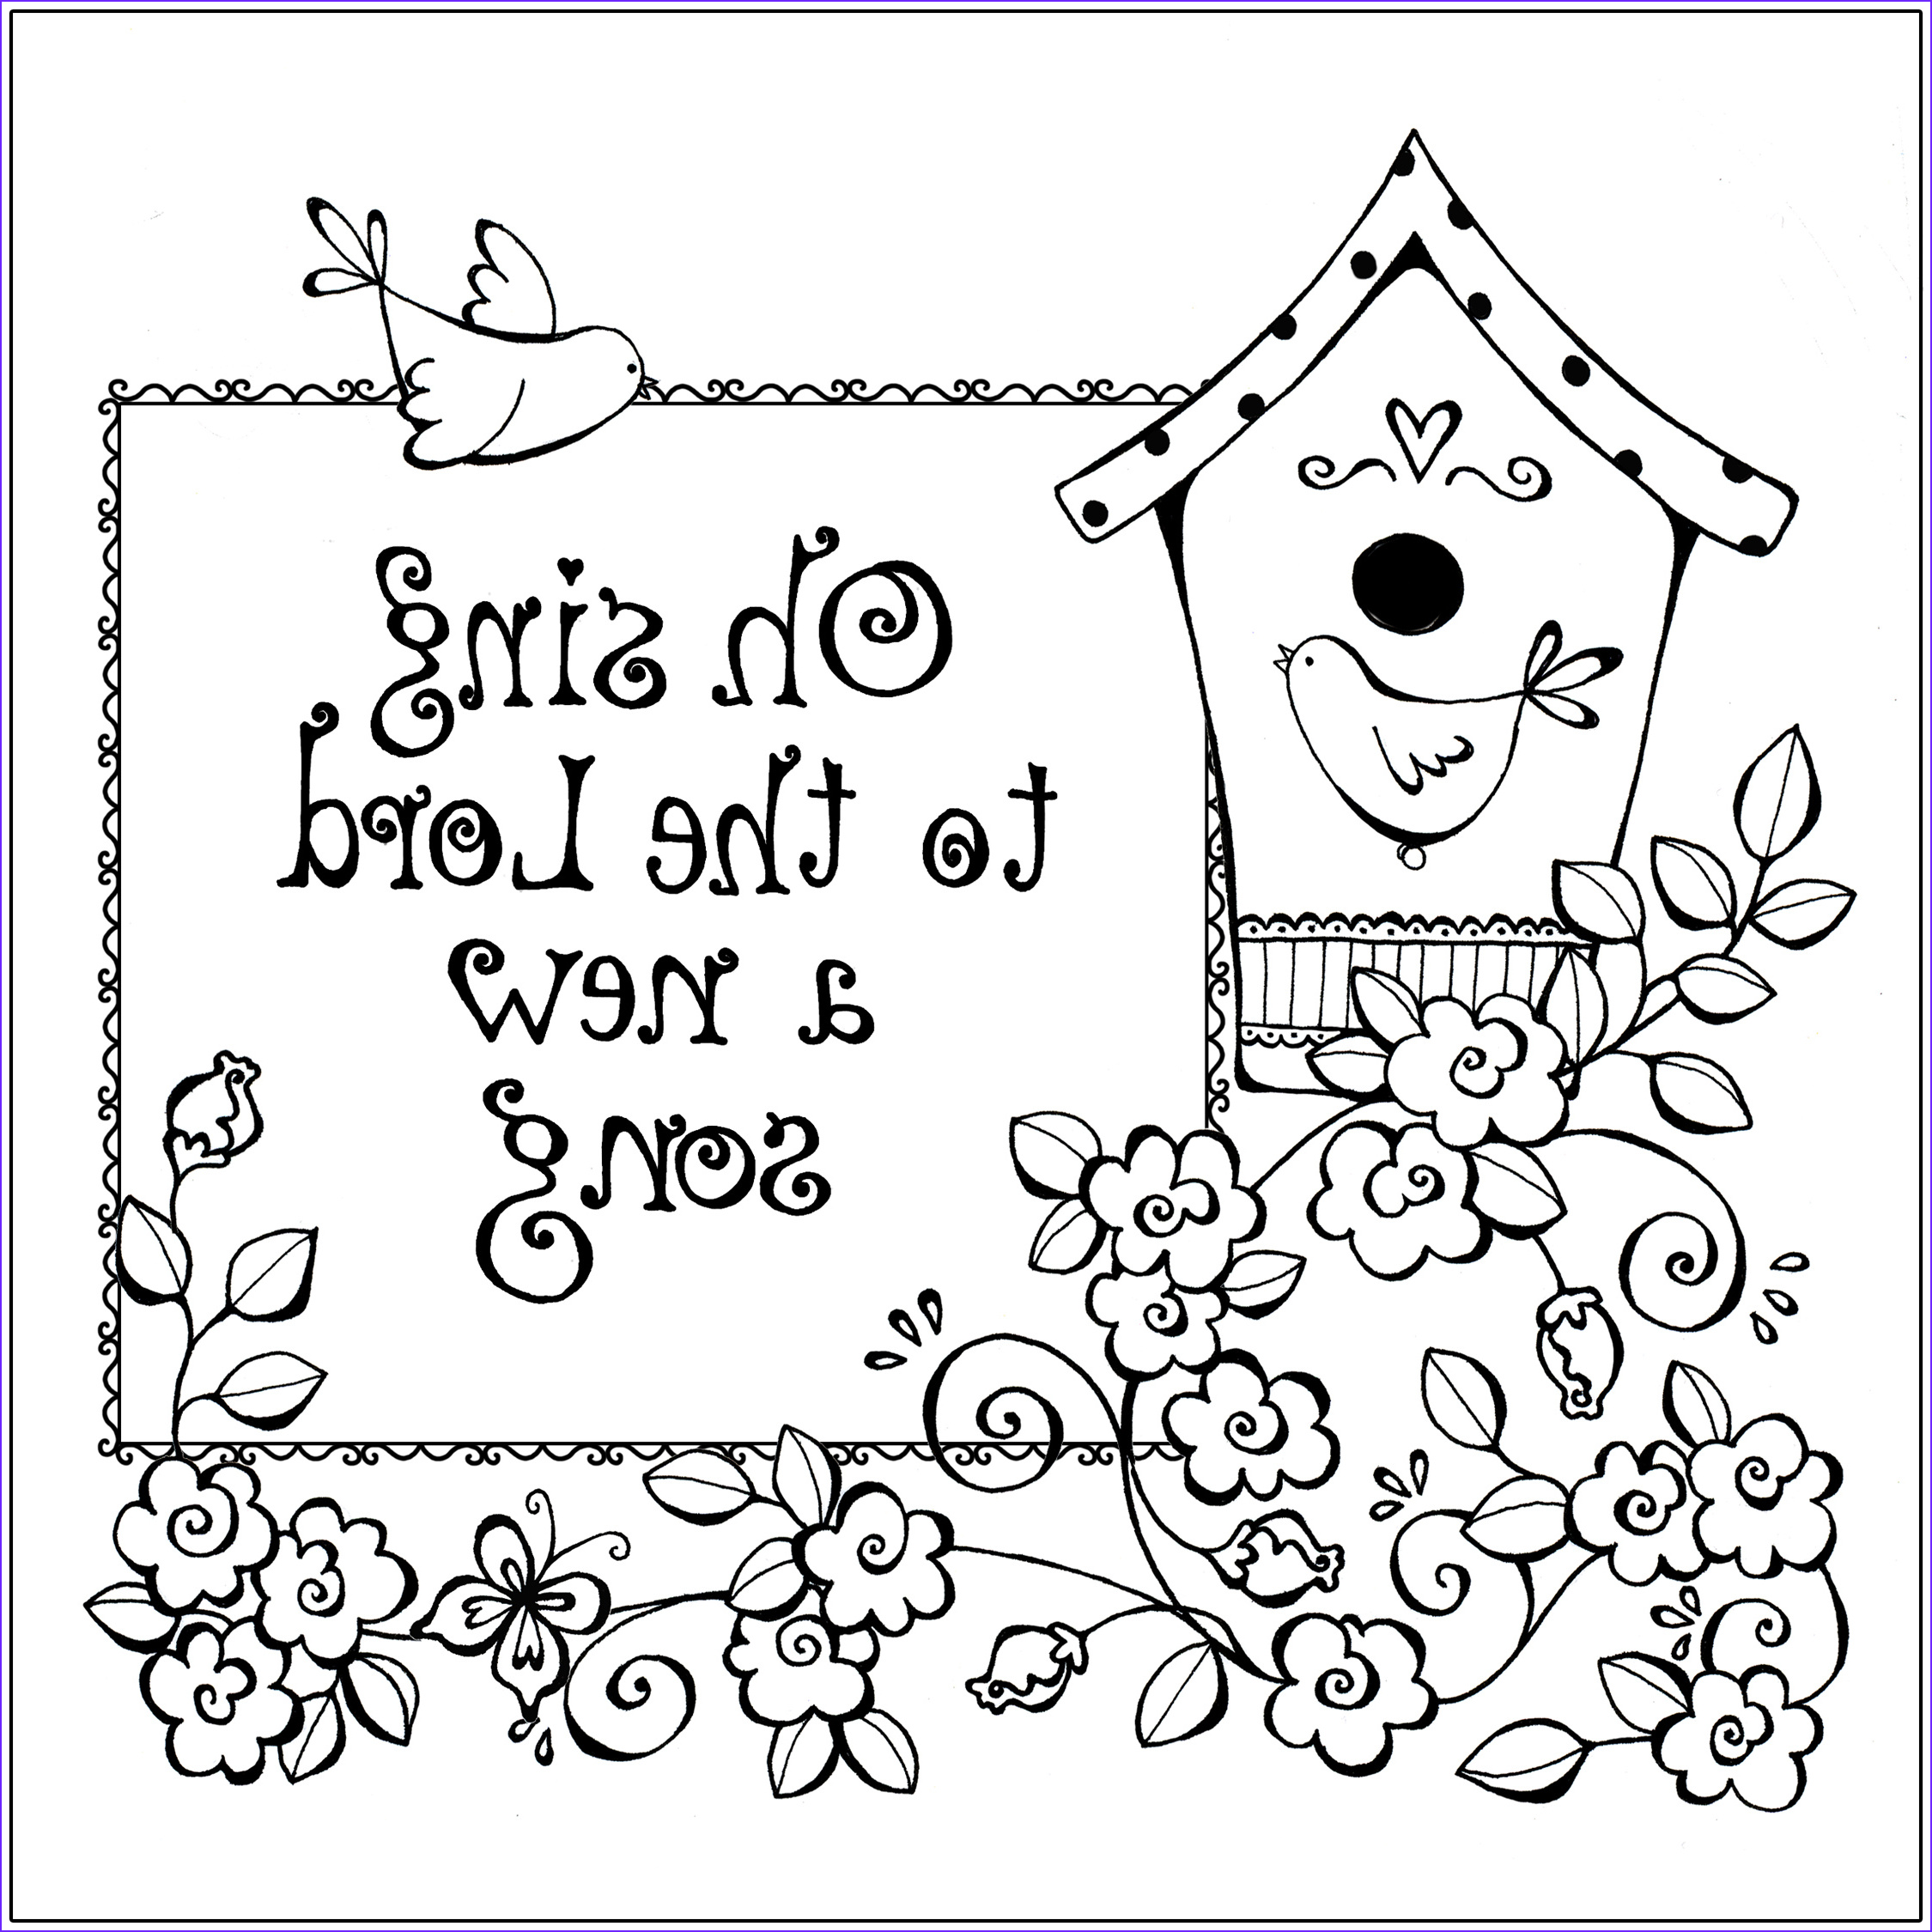 Free Christian Coloring Pages New Photos Free Printable Christian Coloring Pages for Kids Best